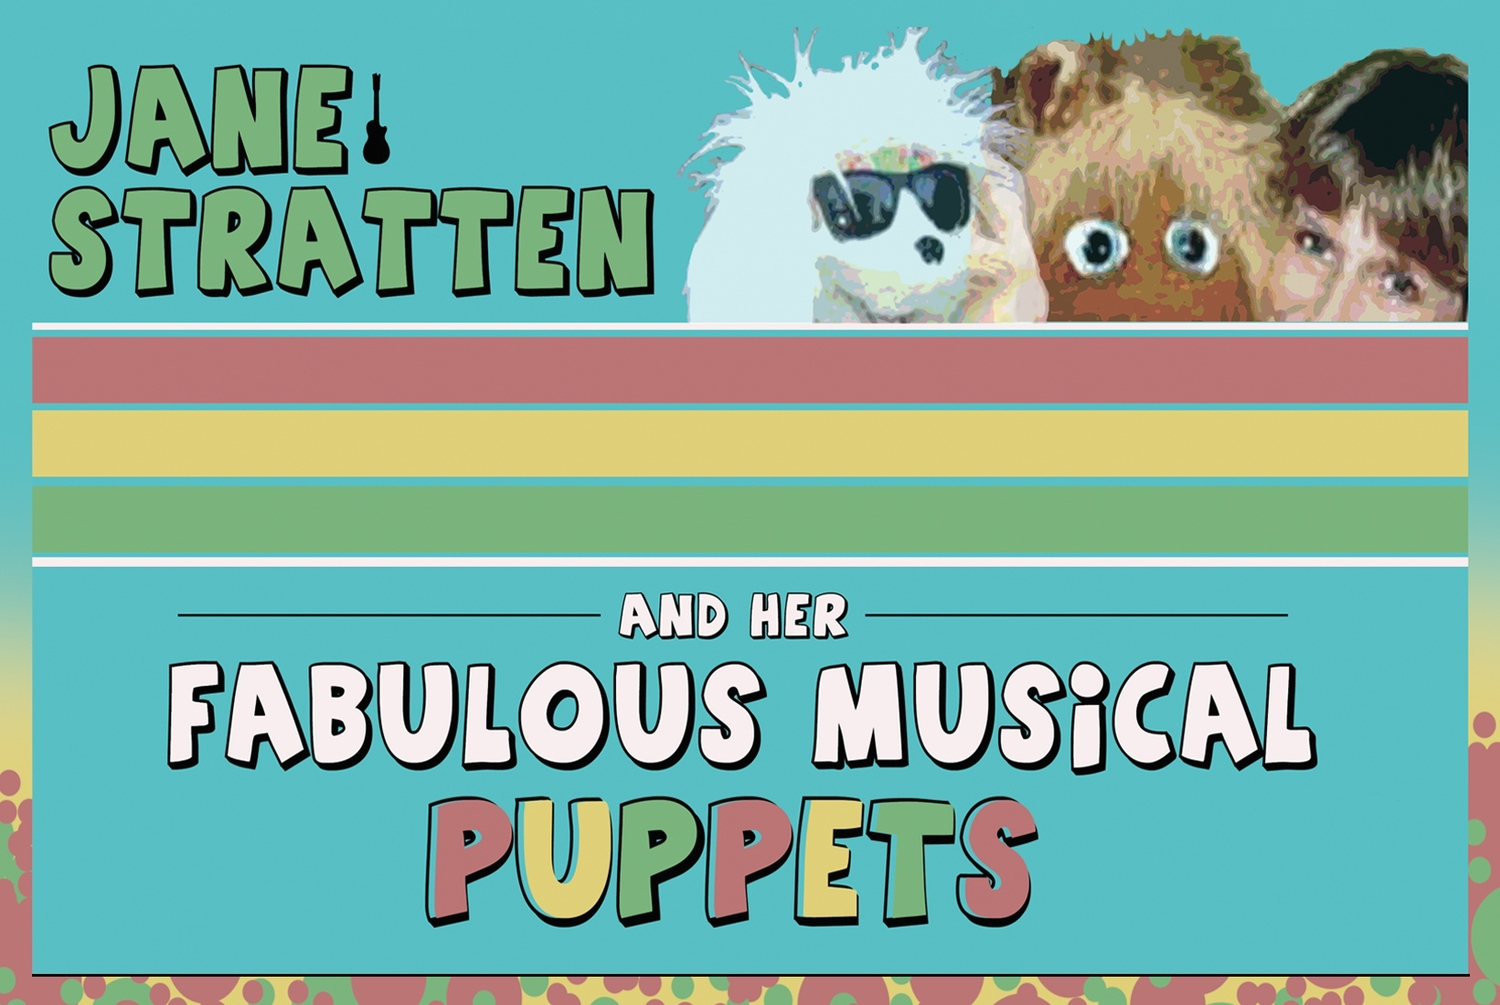 Jane Stratten and Her Fabulous Musical Puppets